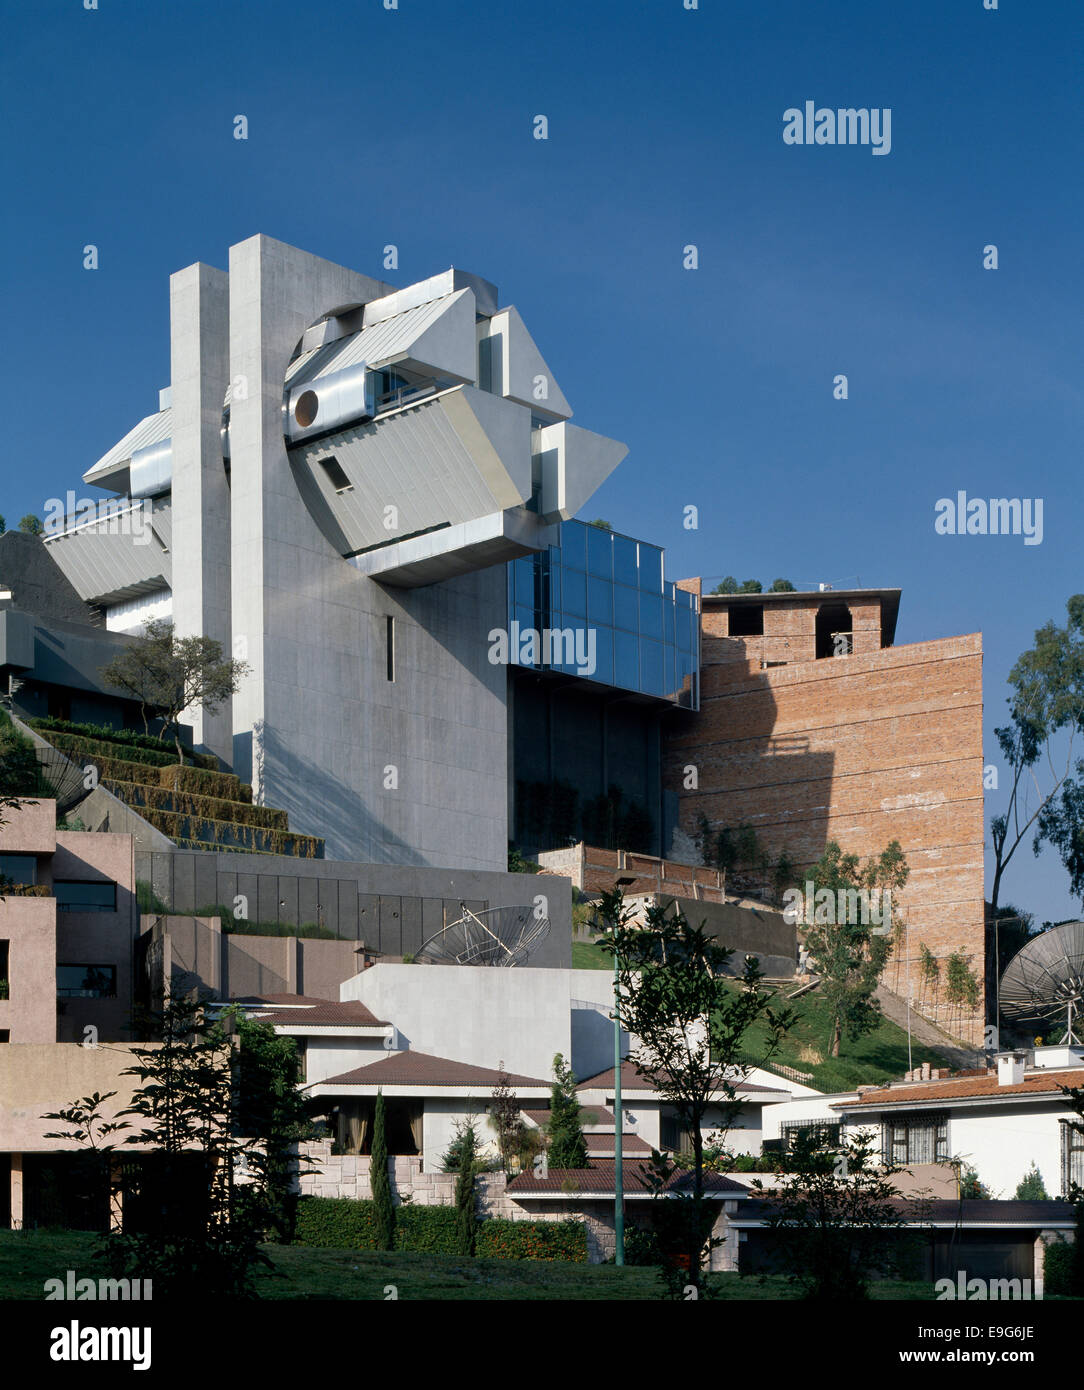 Exterior Facade Of Hernandez House Bosques De Las Lomas Mexico Stock Photo Alamy